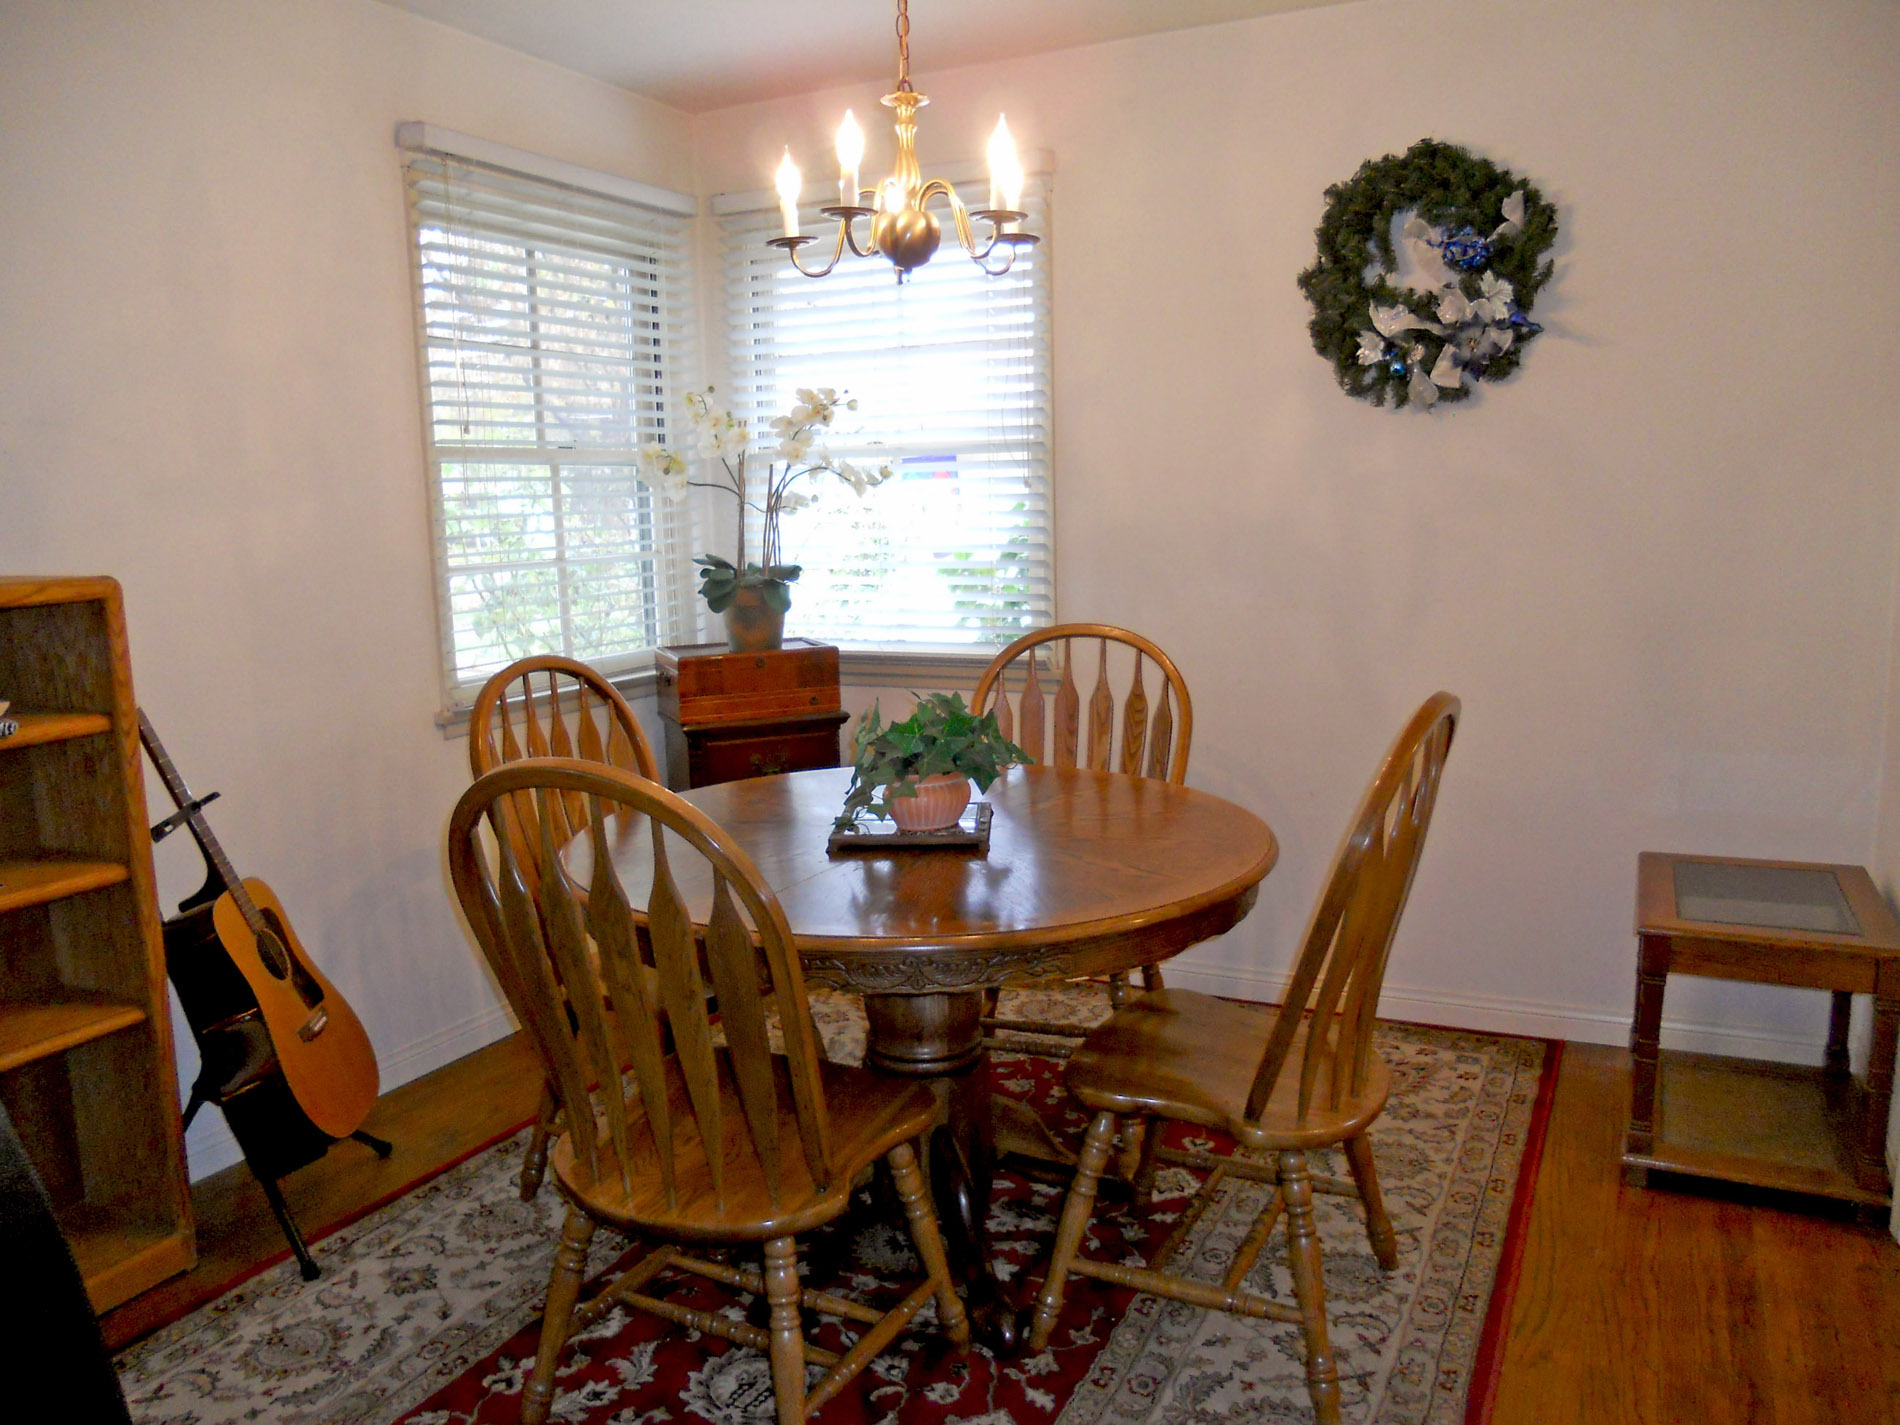 Formal dining room with hardwood floors and lovely corner windows.